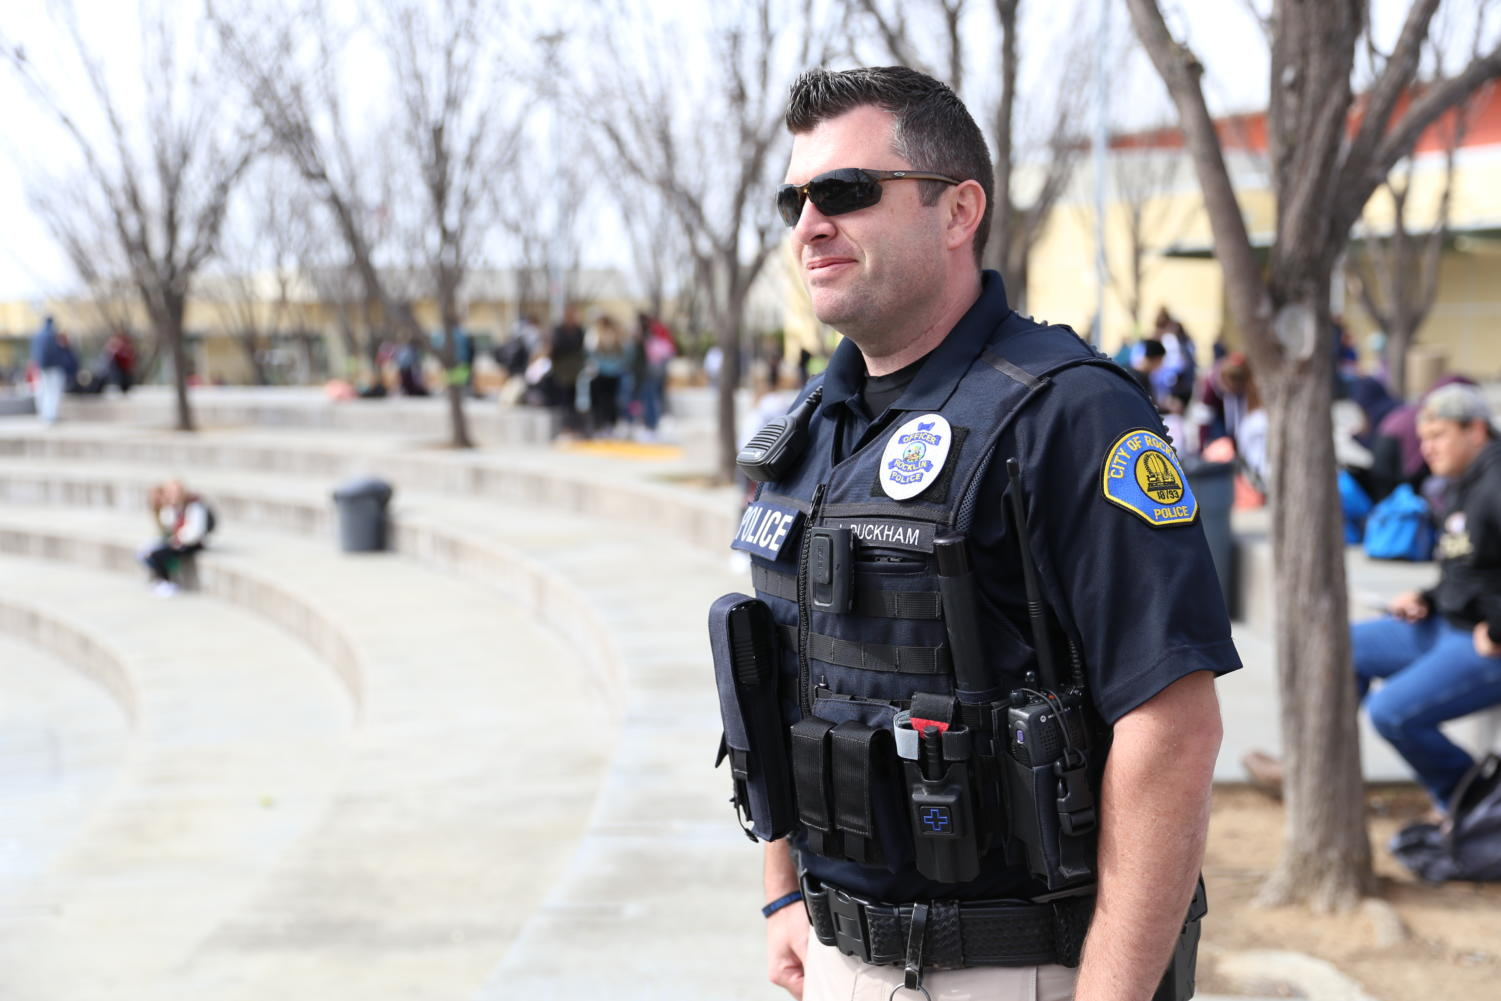 At intervention, Rocklin Police Department Officer Duckham patrols the amphitheater. Photo by Britney Flint